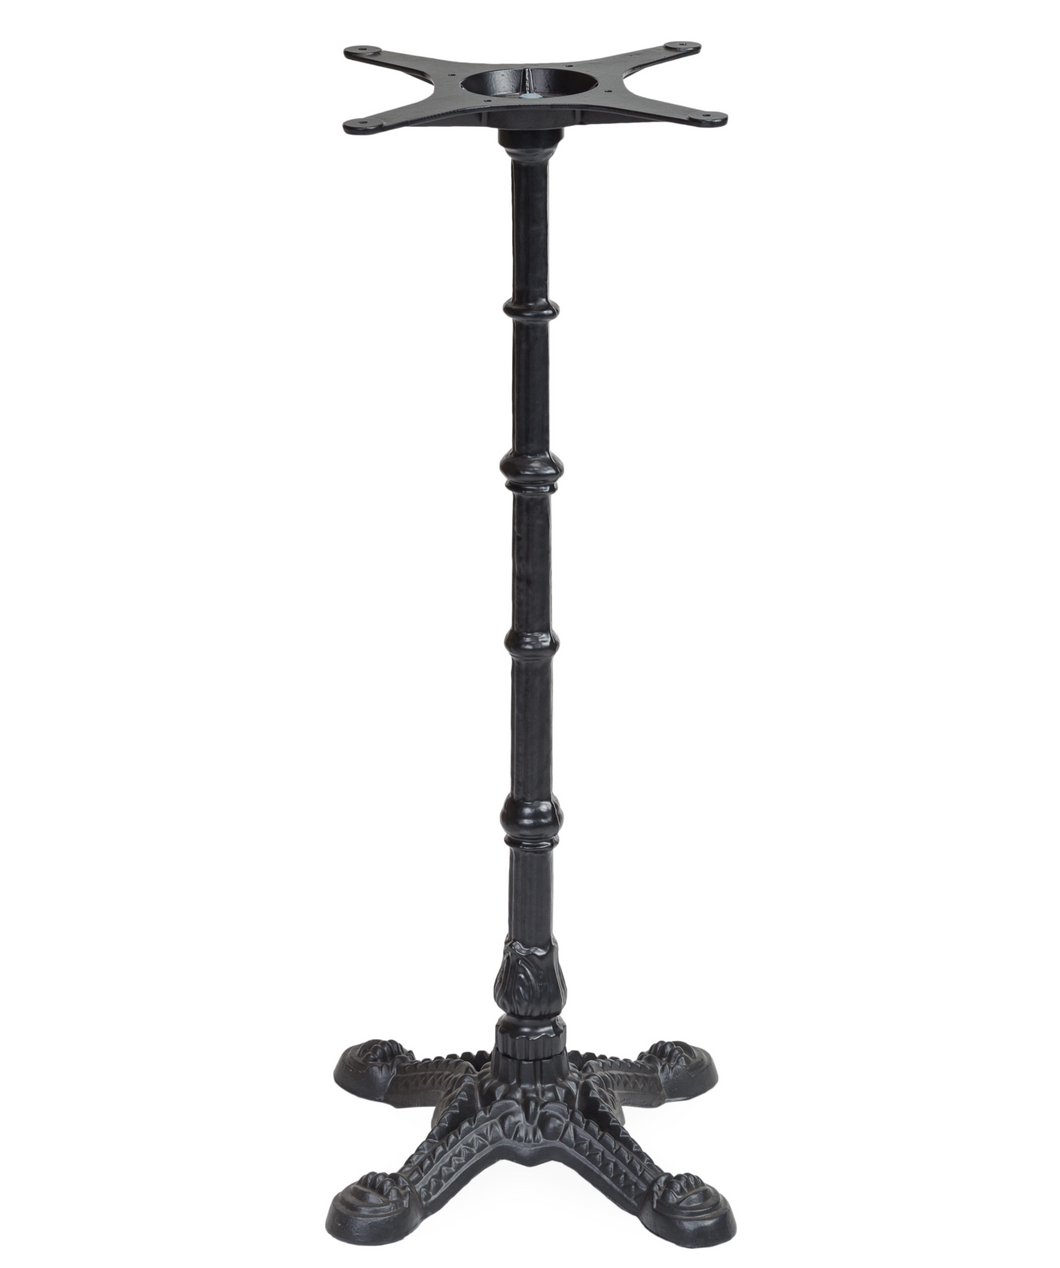 TT-103PUB Table Base Indoor - JrcNYC